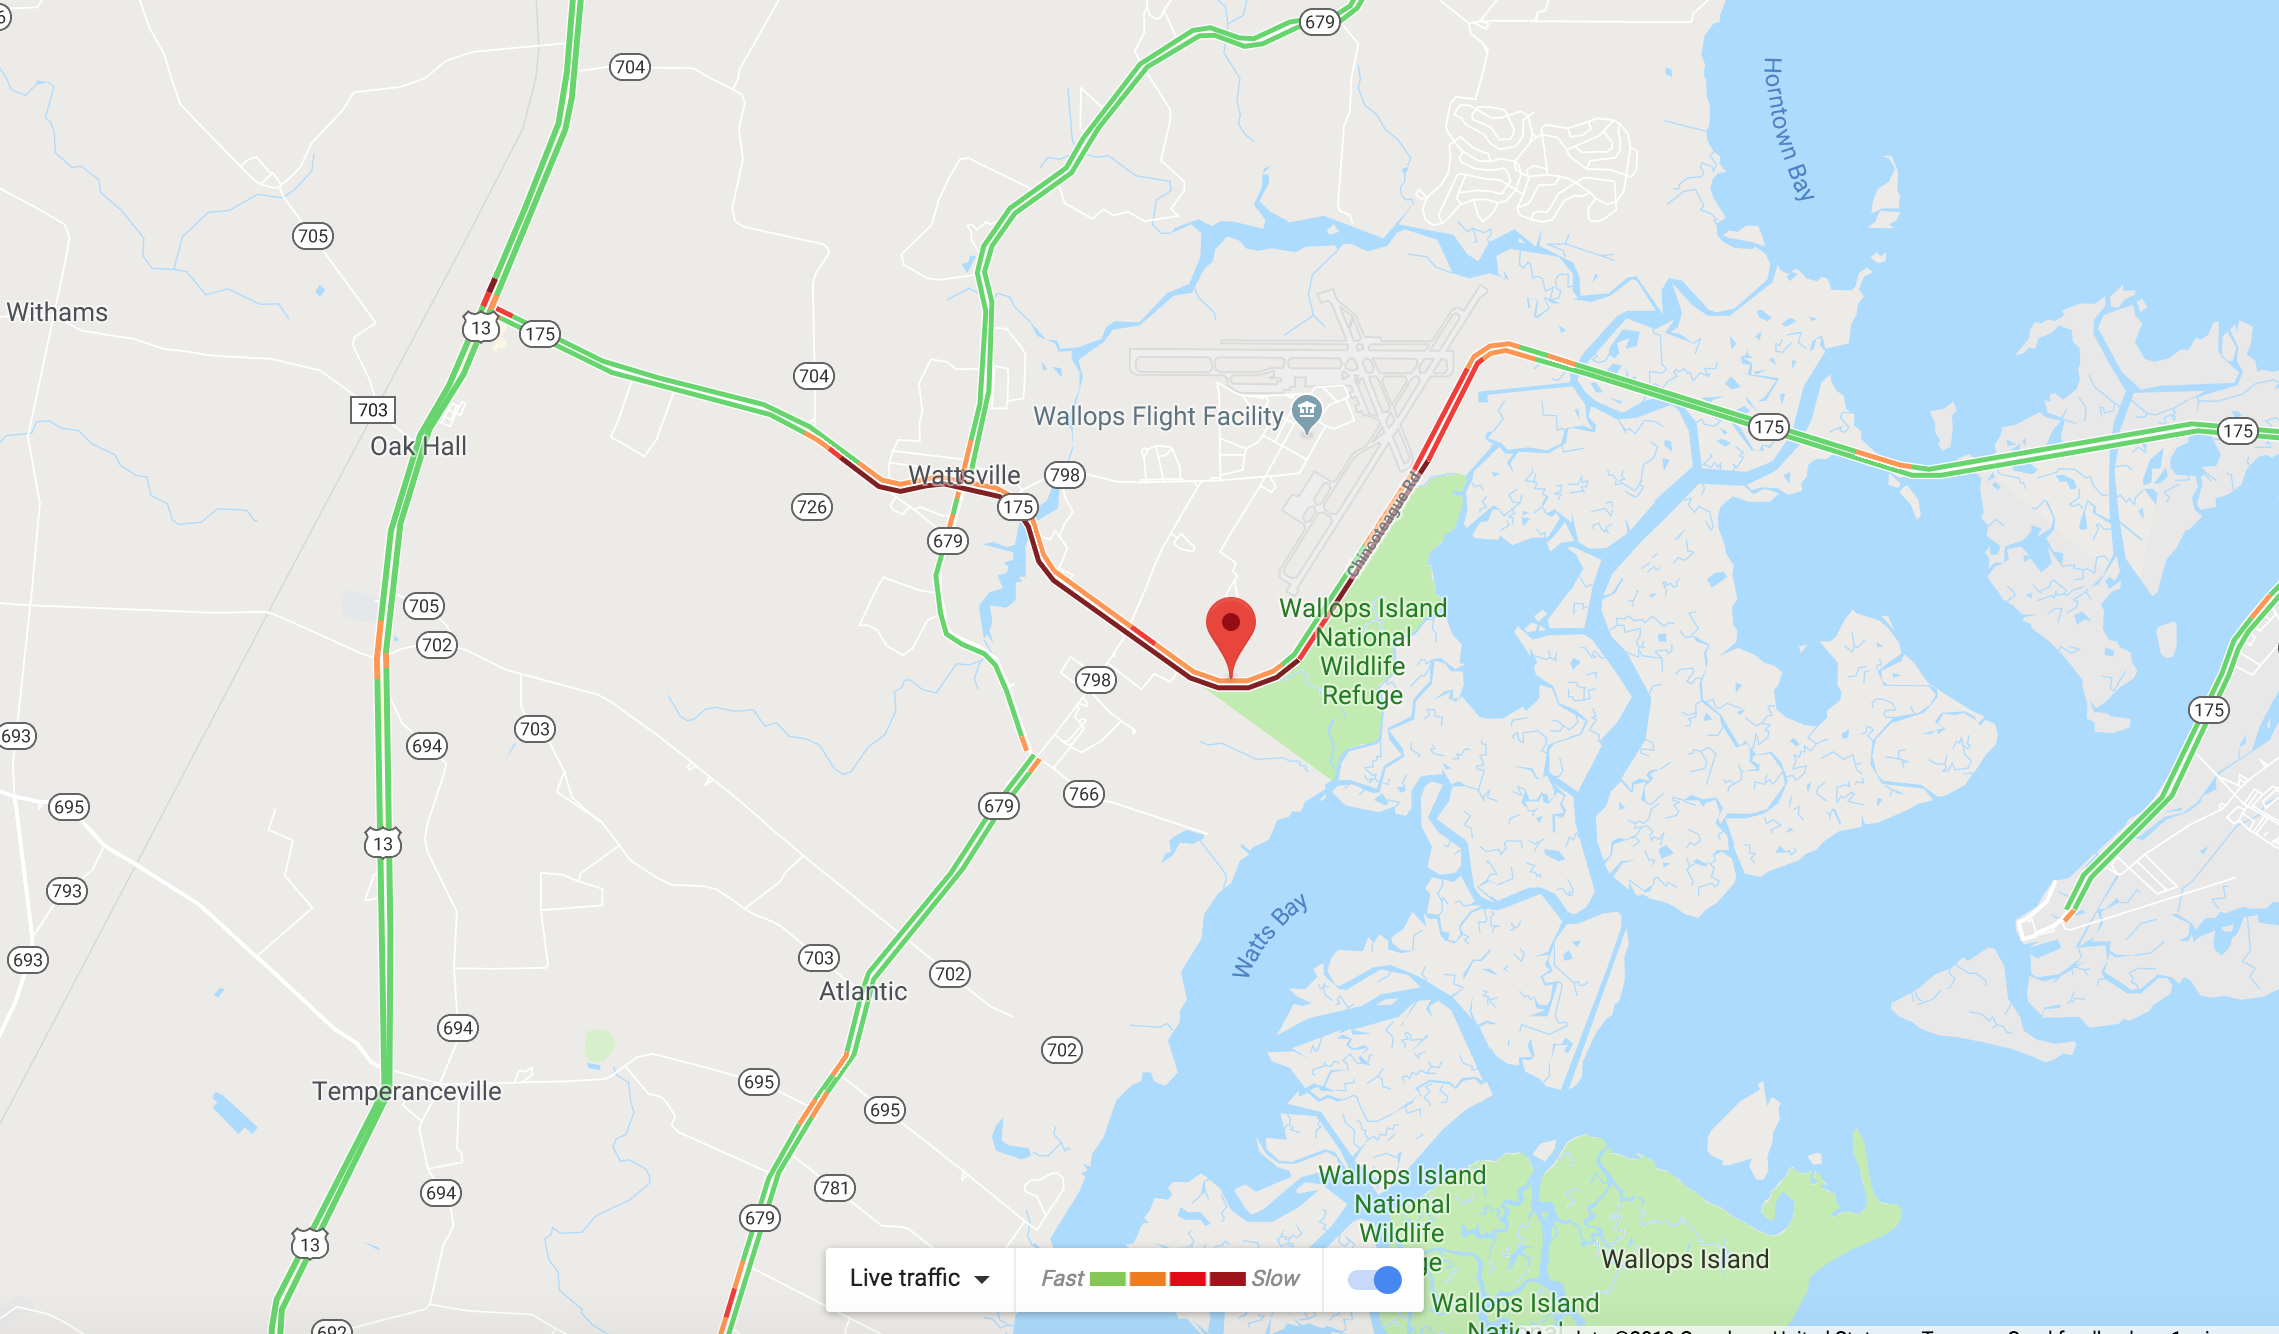 Traffic backup on Route 175 ahead of NASA Wallops rocket launch on April 17, 2019, is shown by Google Maps.